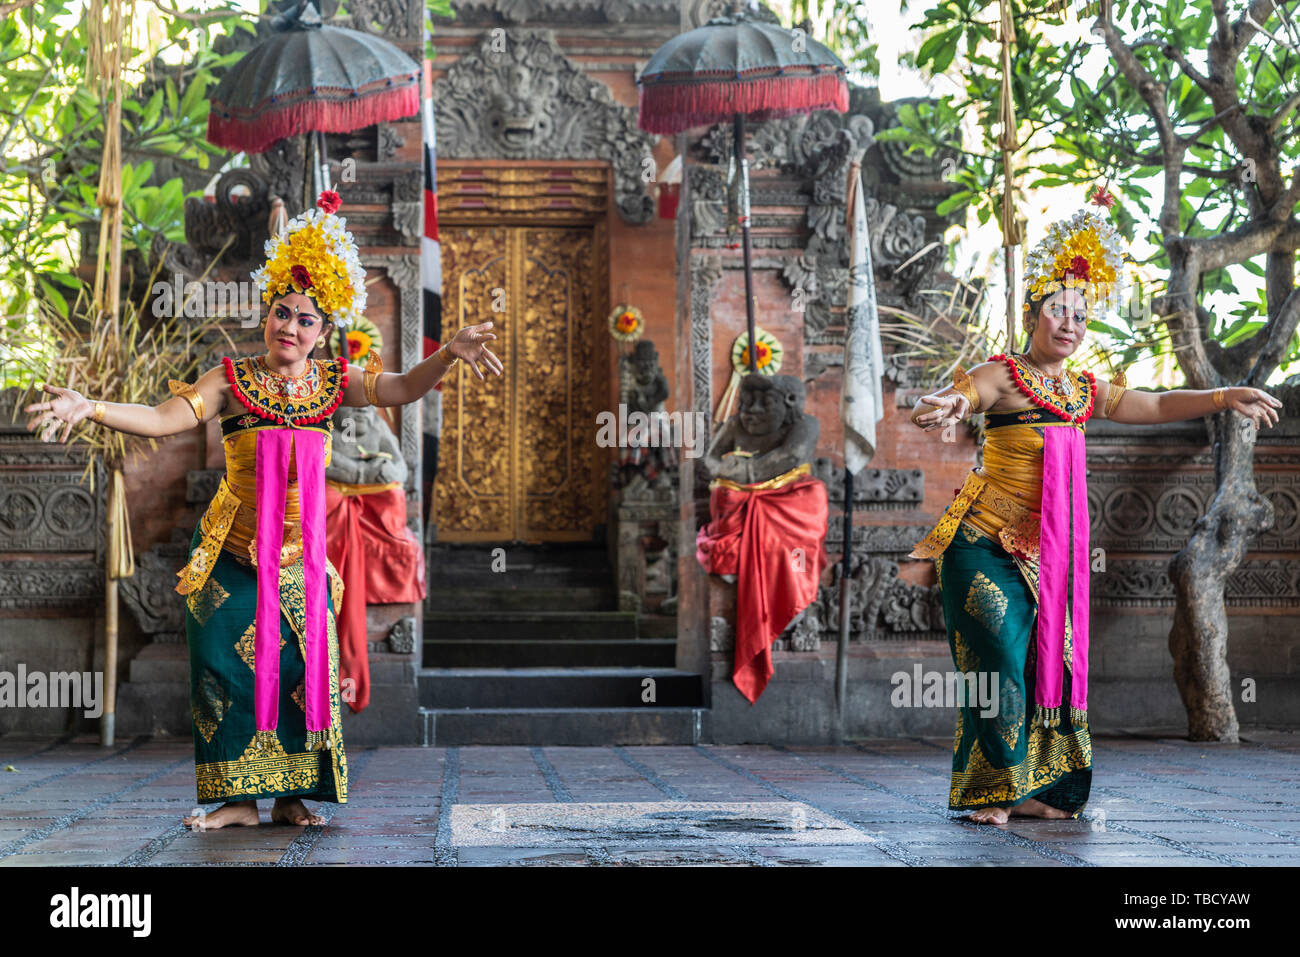 Banjar Gelulung Bali Indonesia February 26 2019 Mas Village Play On Stage Setting Two Women With Head Ornaments And Traditional Dress With Pin Stock Photo Alamy